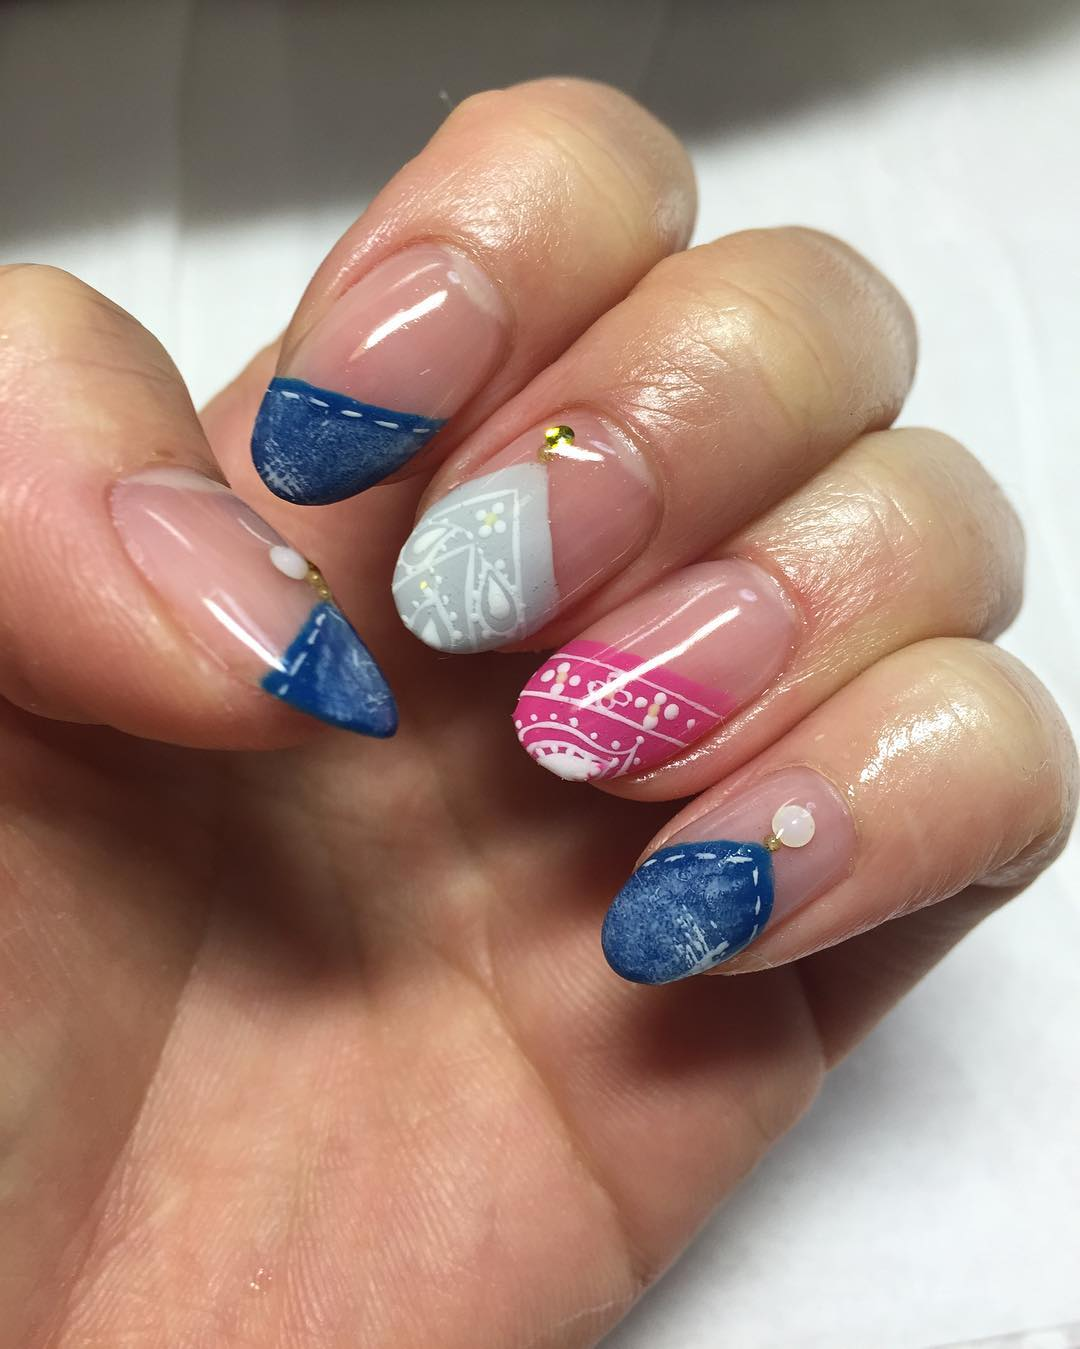 Tip Lace Nail Design For Summer.